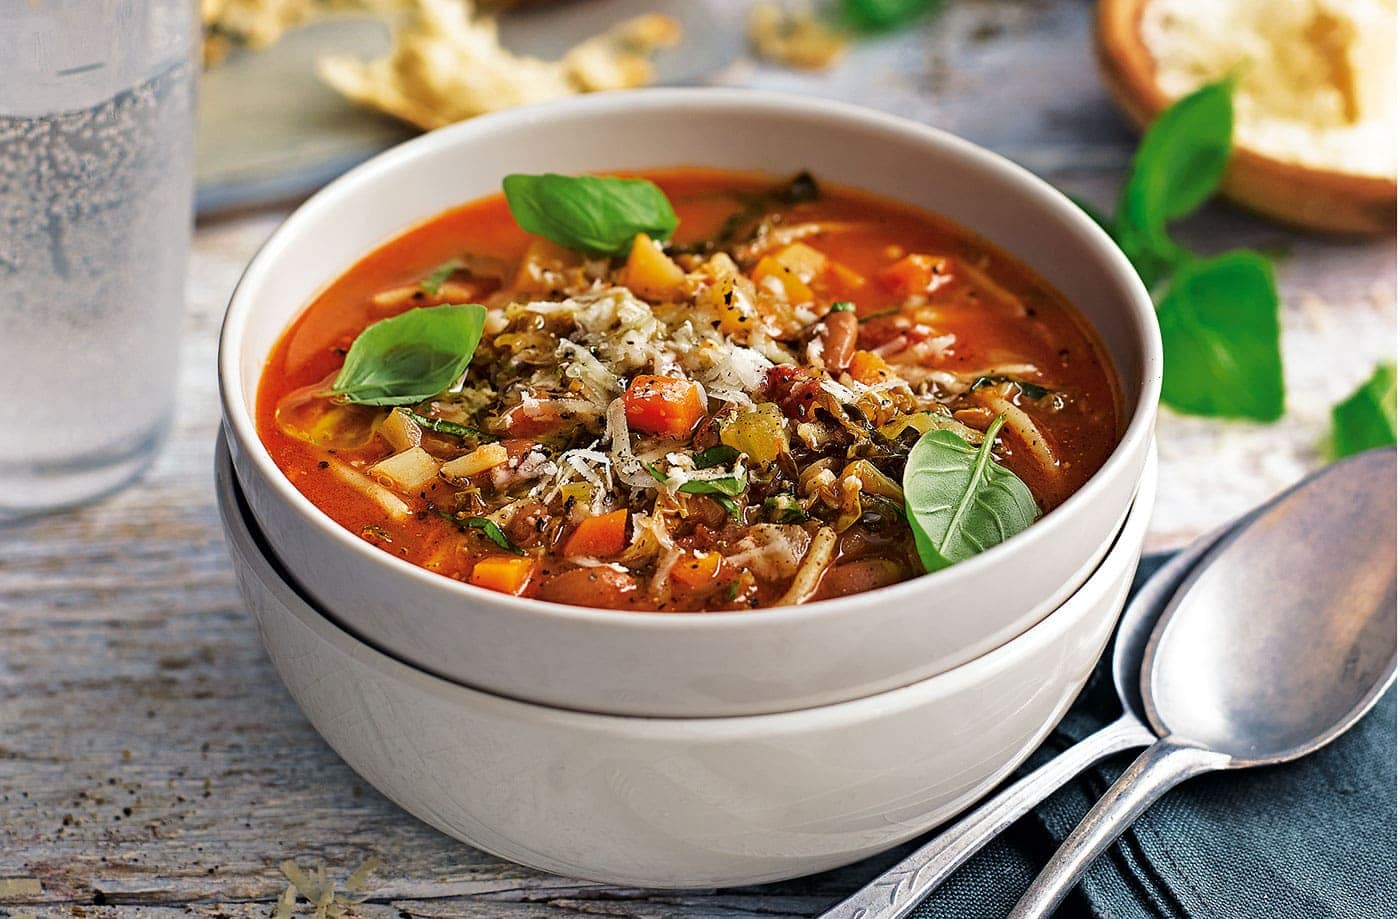 The authentic Italian Minestrone soup recipe is a something worth tasting.